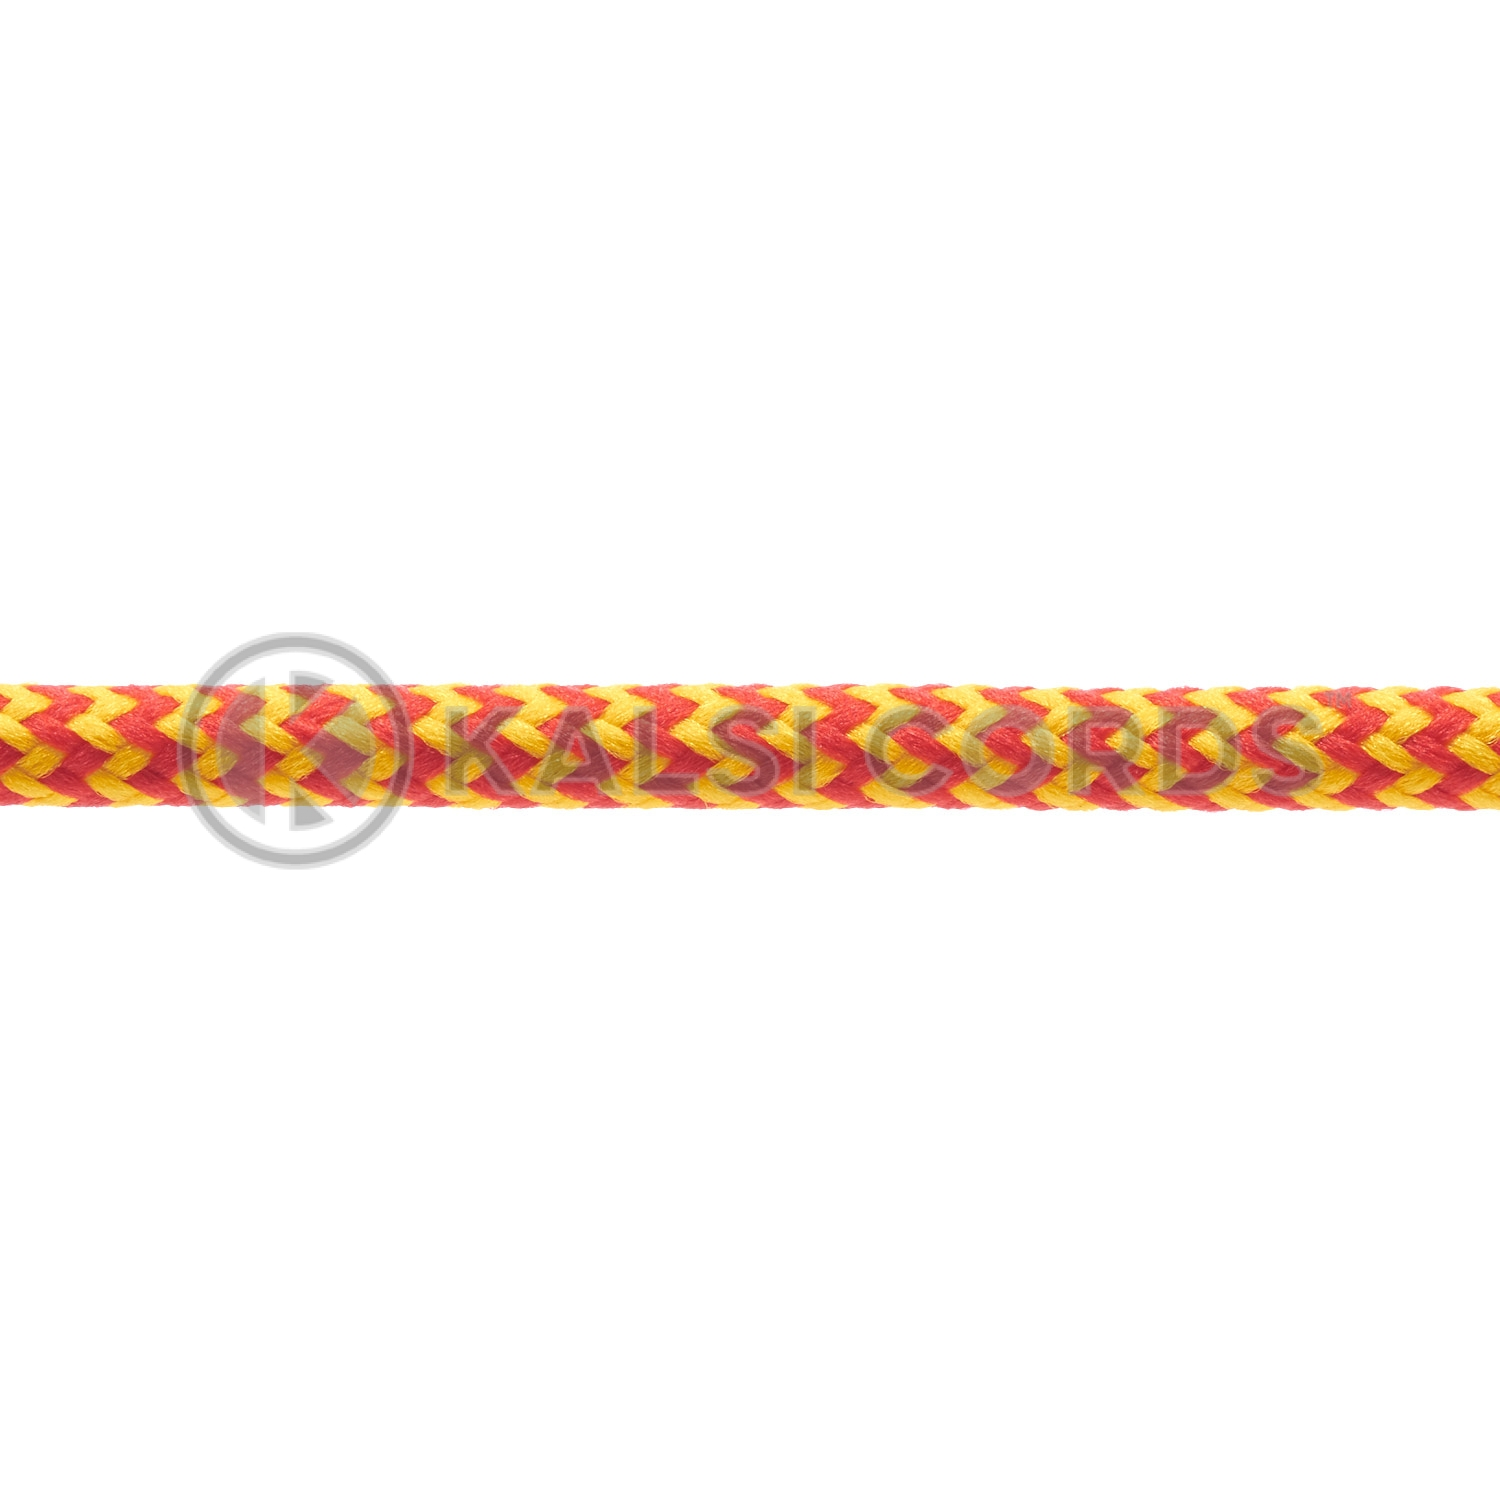 T621 5mm Round Cord Shoe Laces Red Yellow Herringbone Pattern Kids Trainers Adults Hiking Walking Boots Kalsi Cords